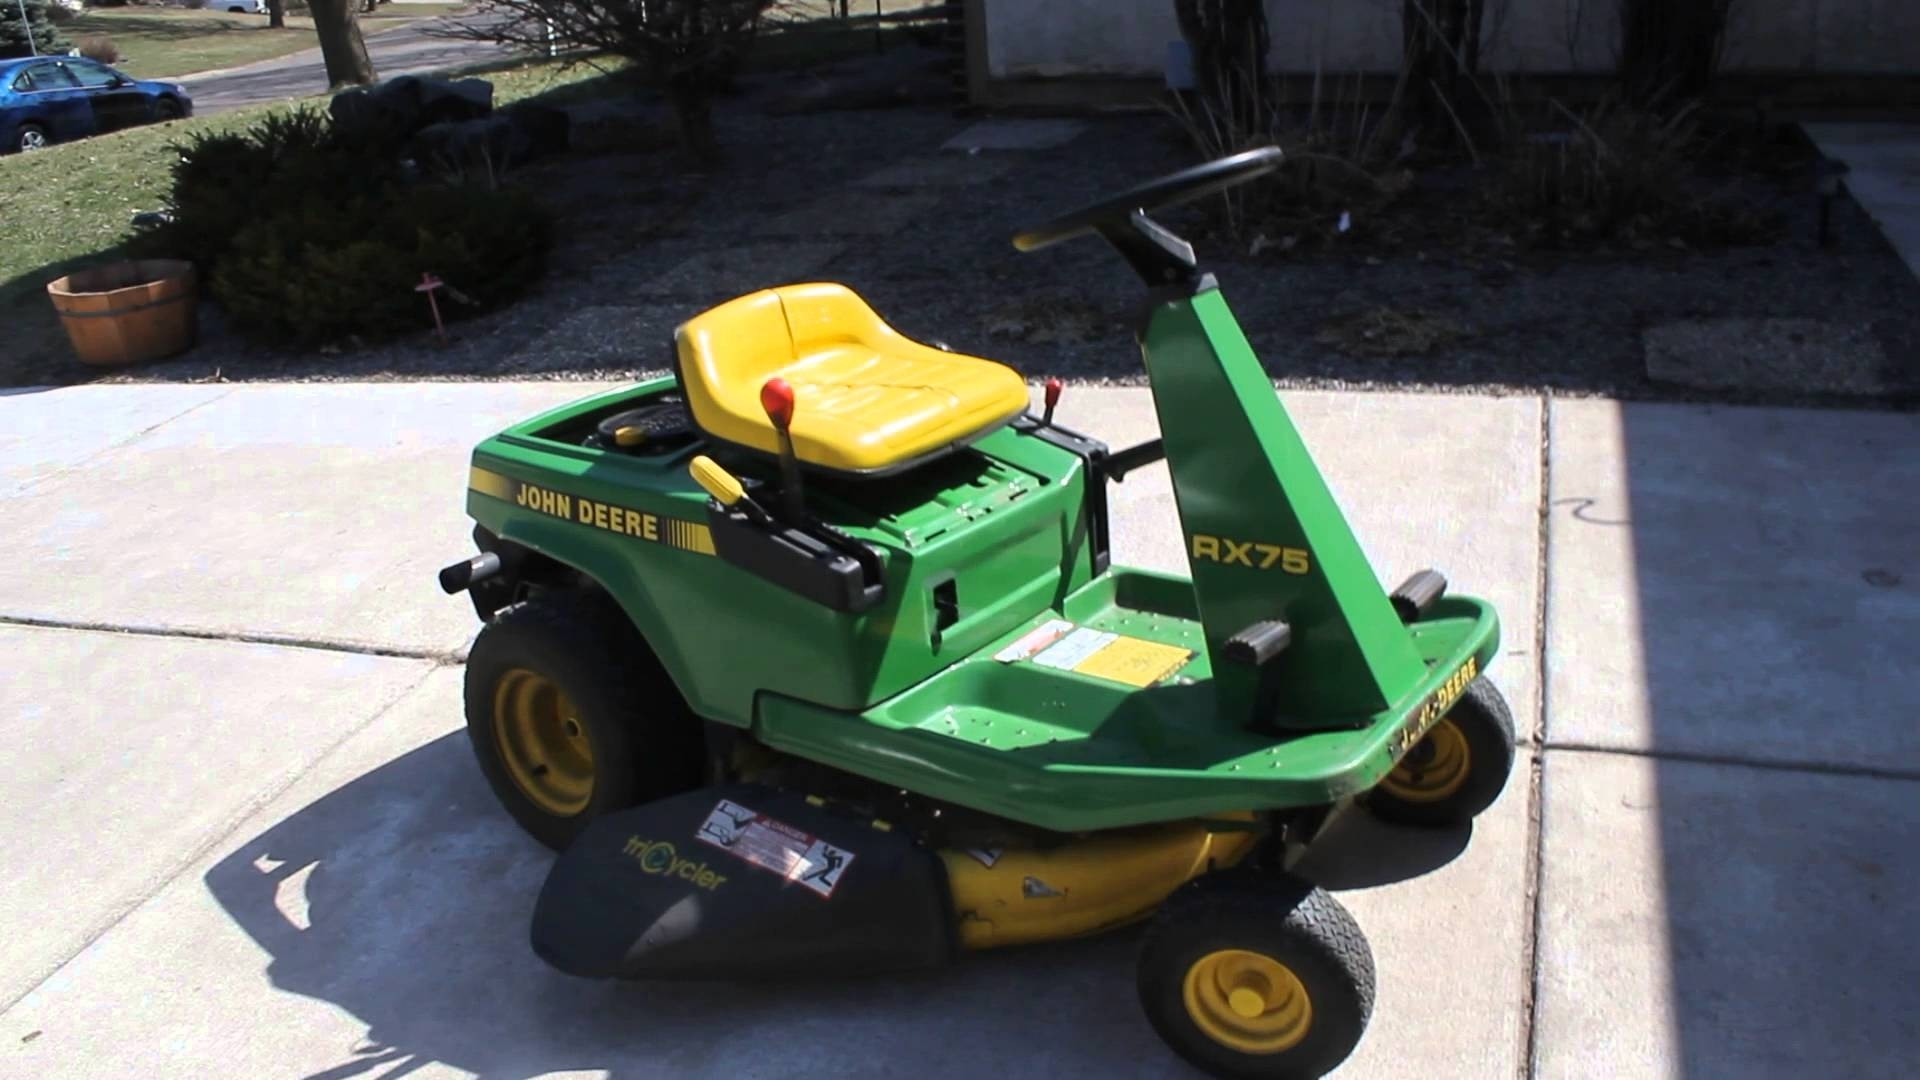 John Deere Rx75 Lawn Mower Parts - Best Deer 2017 inside John Deere Parts Diagrams Lawn Tractor